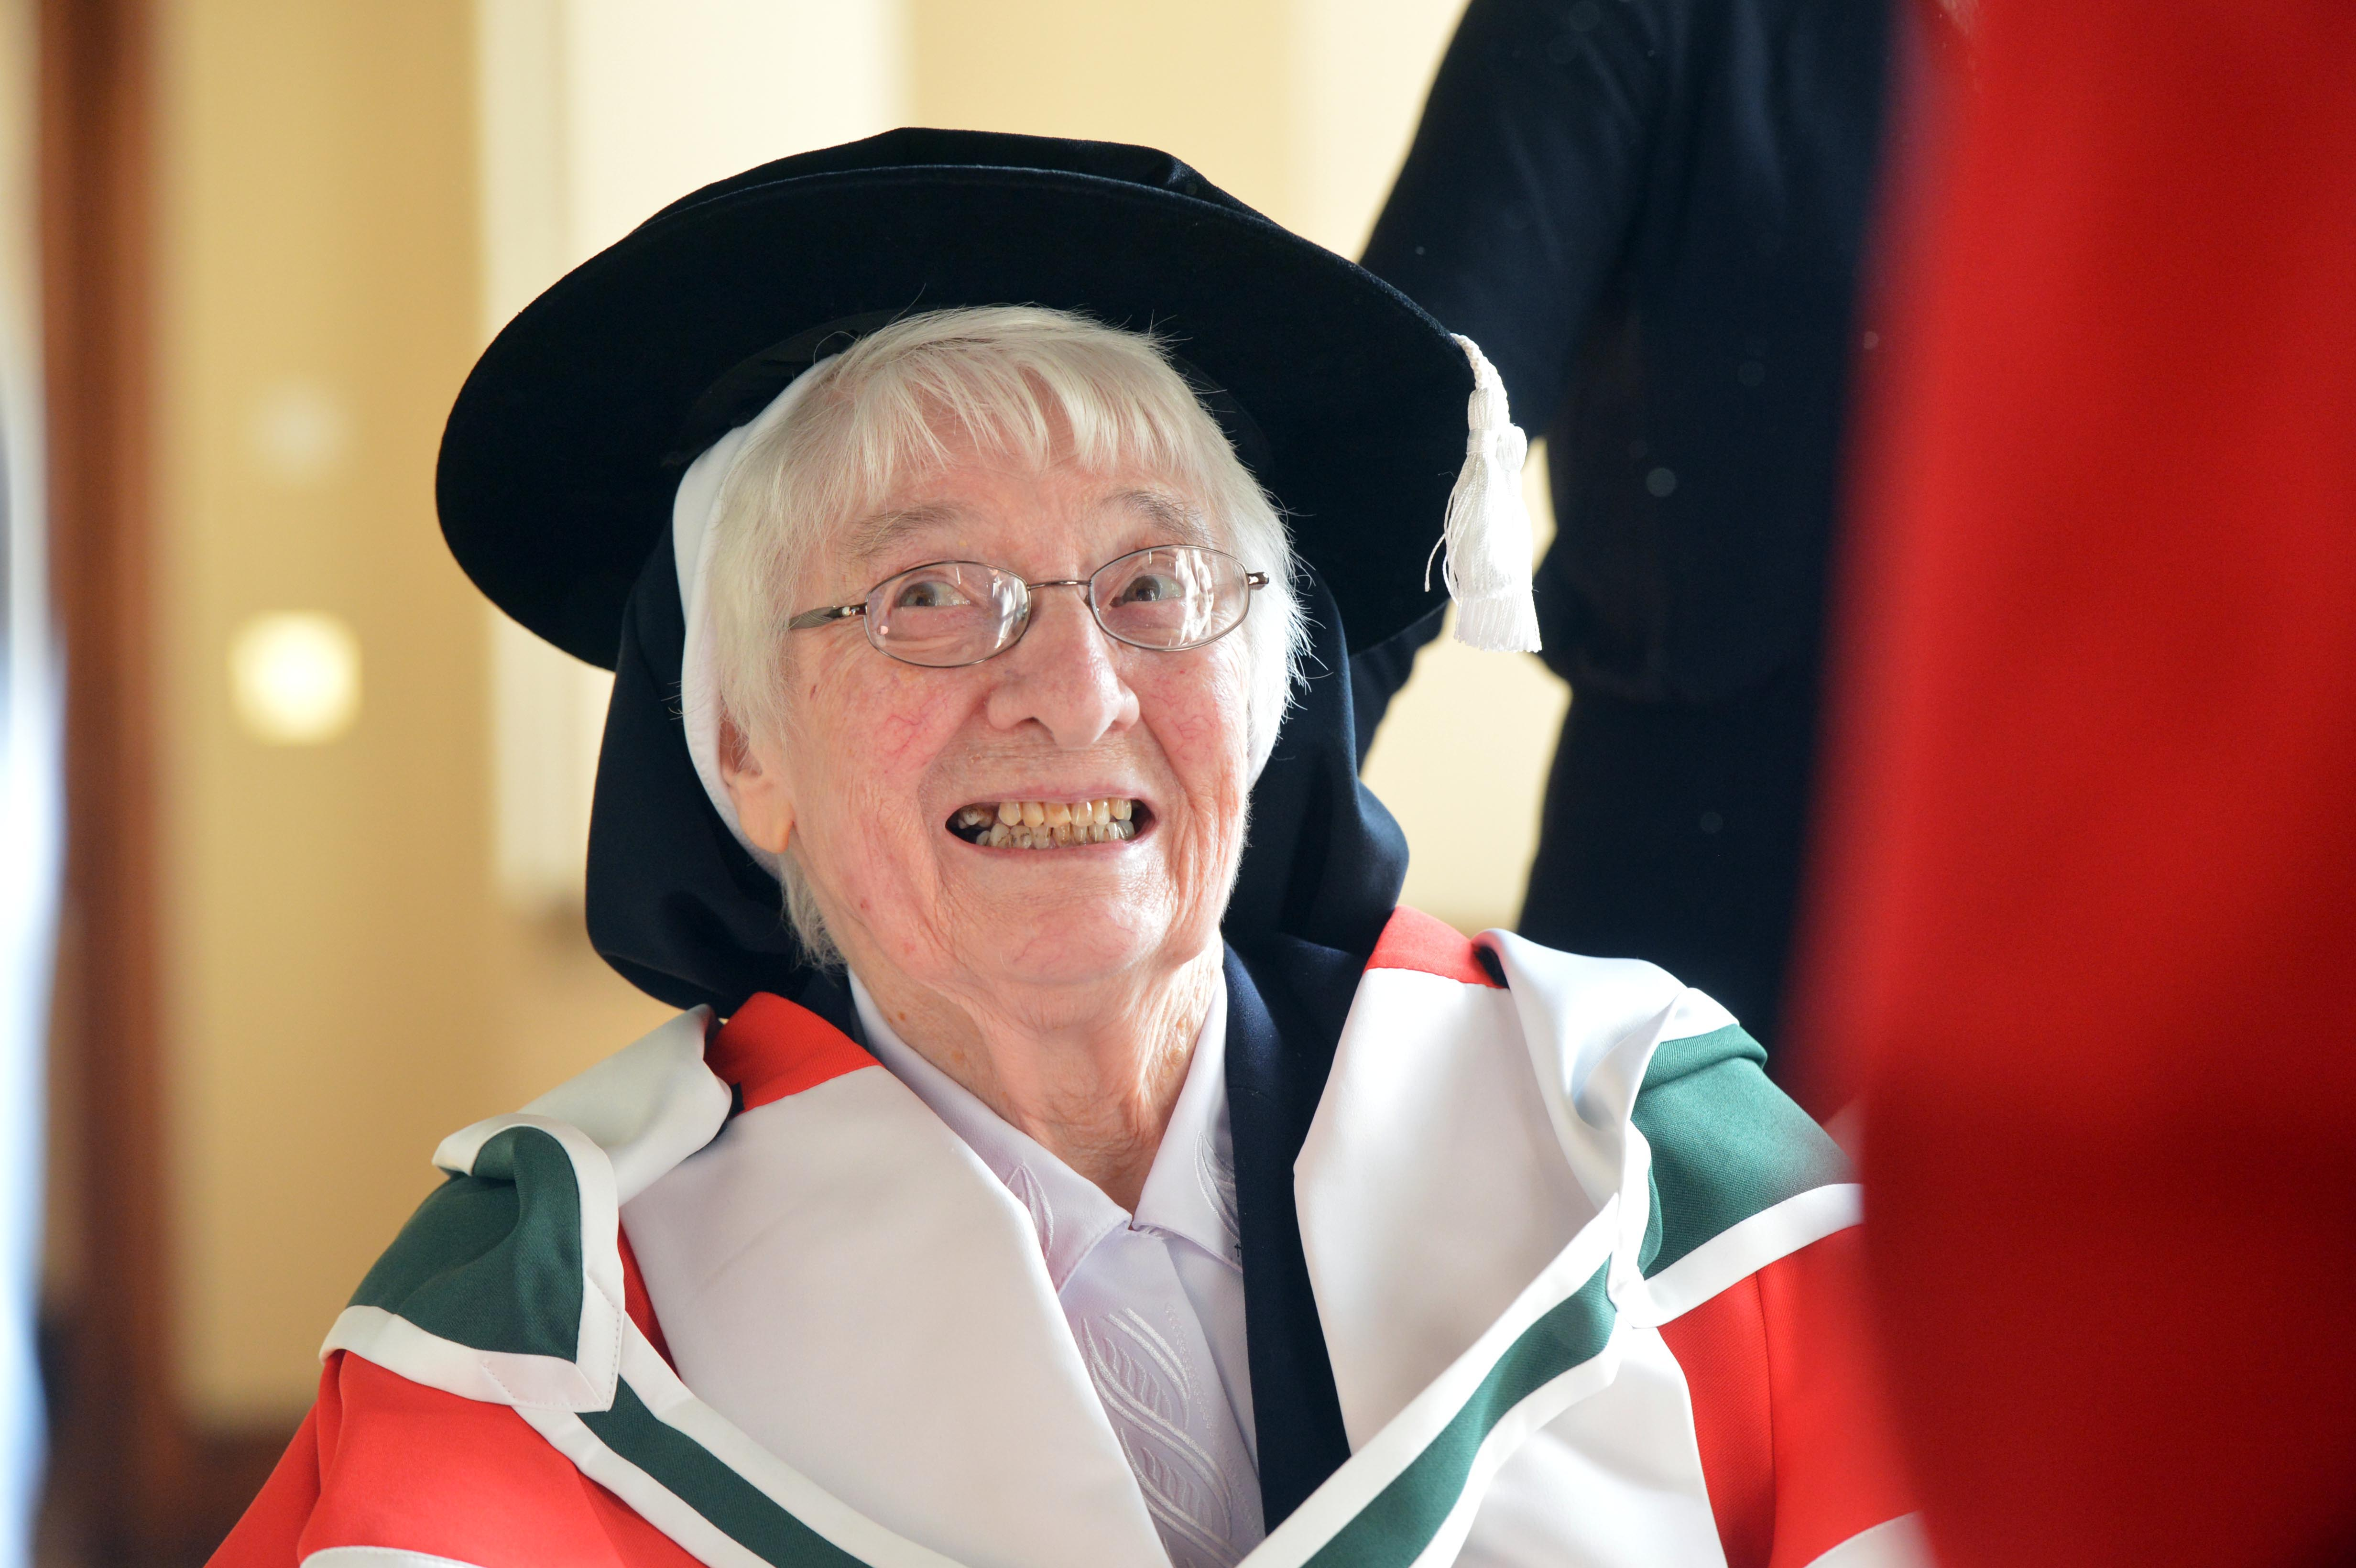 Sr Mercedes Desmond has championed science education for over 60 years.